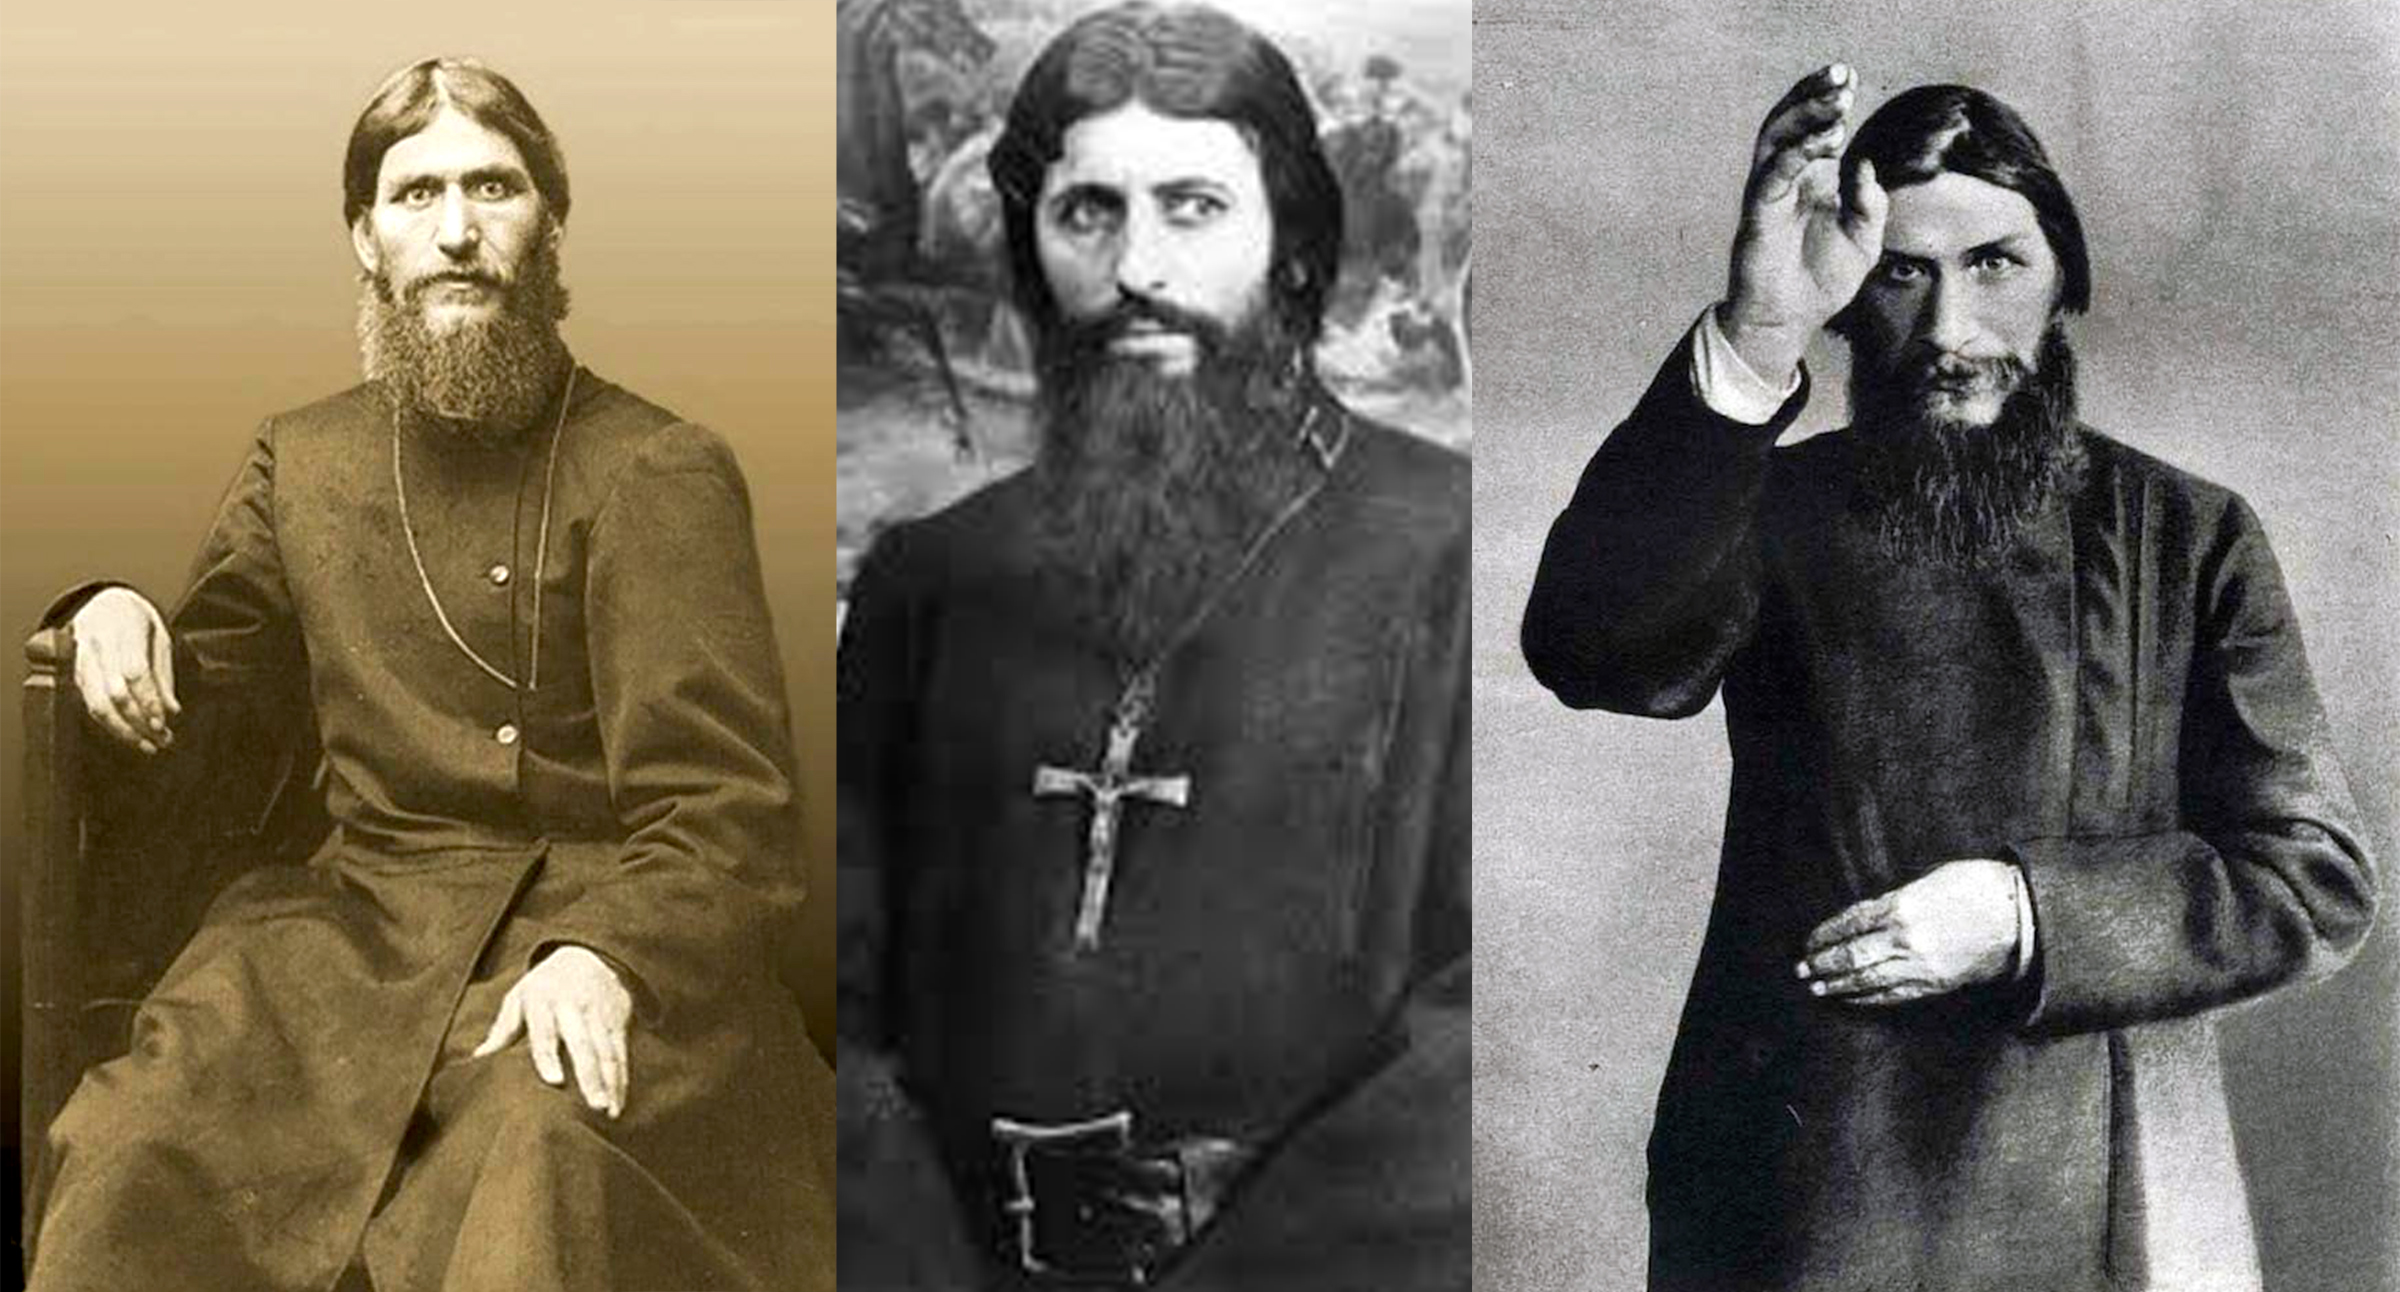 The many faces of Rasputin, a self-proclaimed mystic and healer who had a great deal of influence over Tsar Nicholas II, Russia's last monarch, and his wife, Alexandra. Rasputin was assassinated in 1916. Since the Revolution of 1917, ordinary Germans had developed a fascination with Russian culture, fueled by the influx of the Russian elite into Germany.